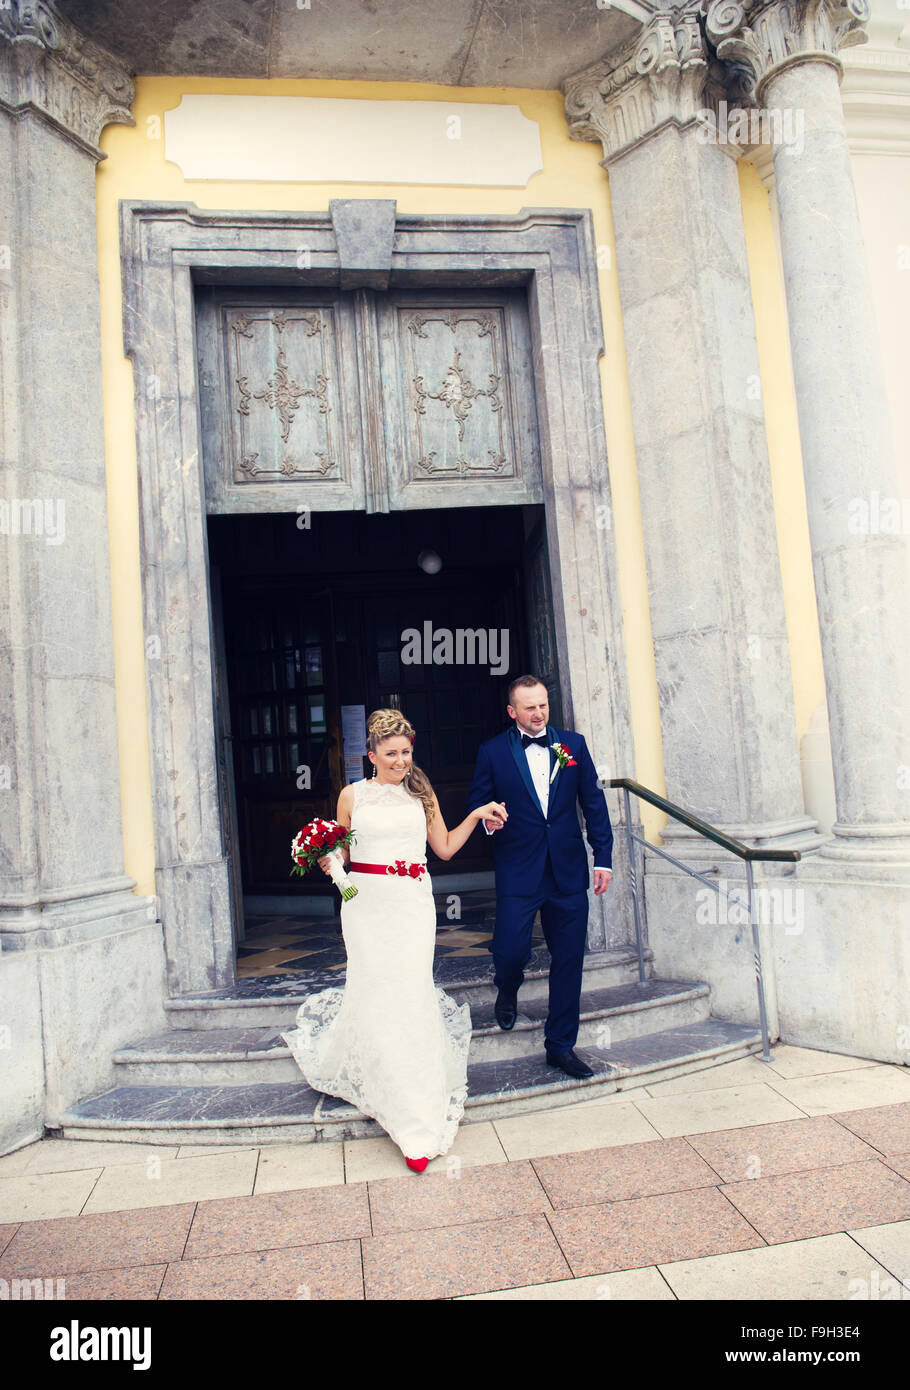 Bride and groom walking out of the church holding hands - Stock Image